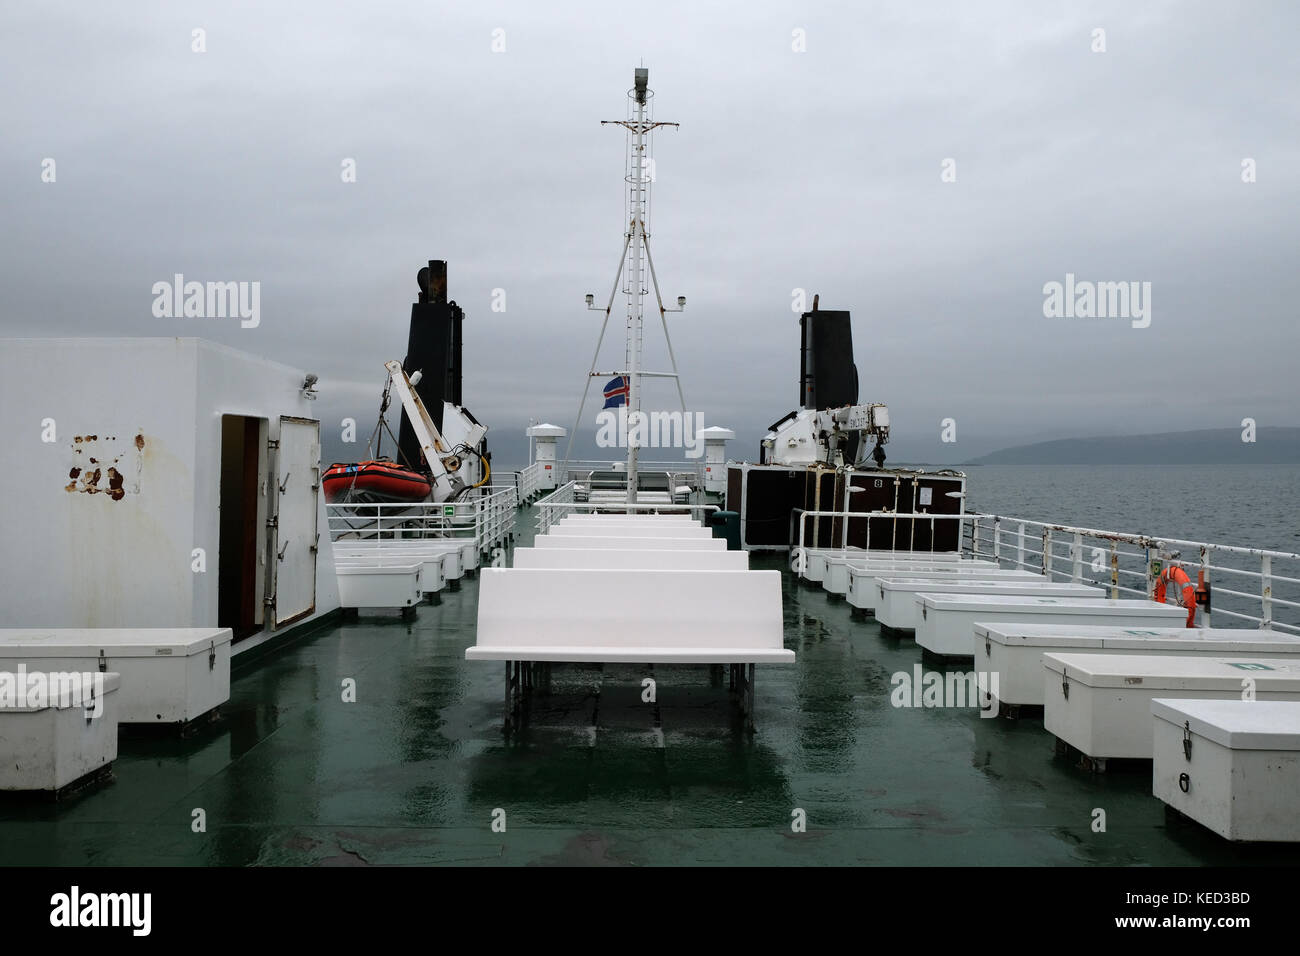 View from rear or stern of Baldur car ferry passenger chairs, seats and life boat on overcast day at sea flying - Stock Image